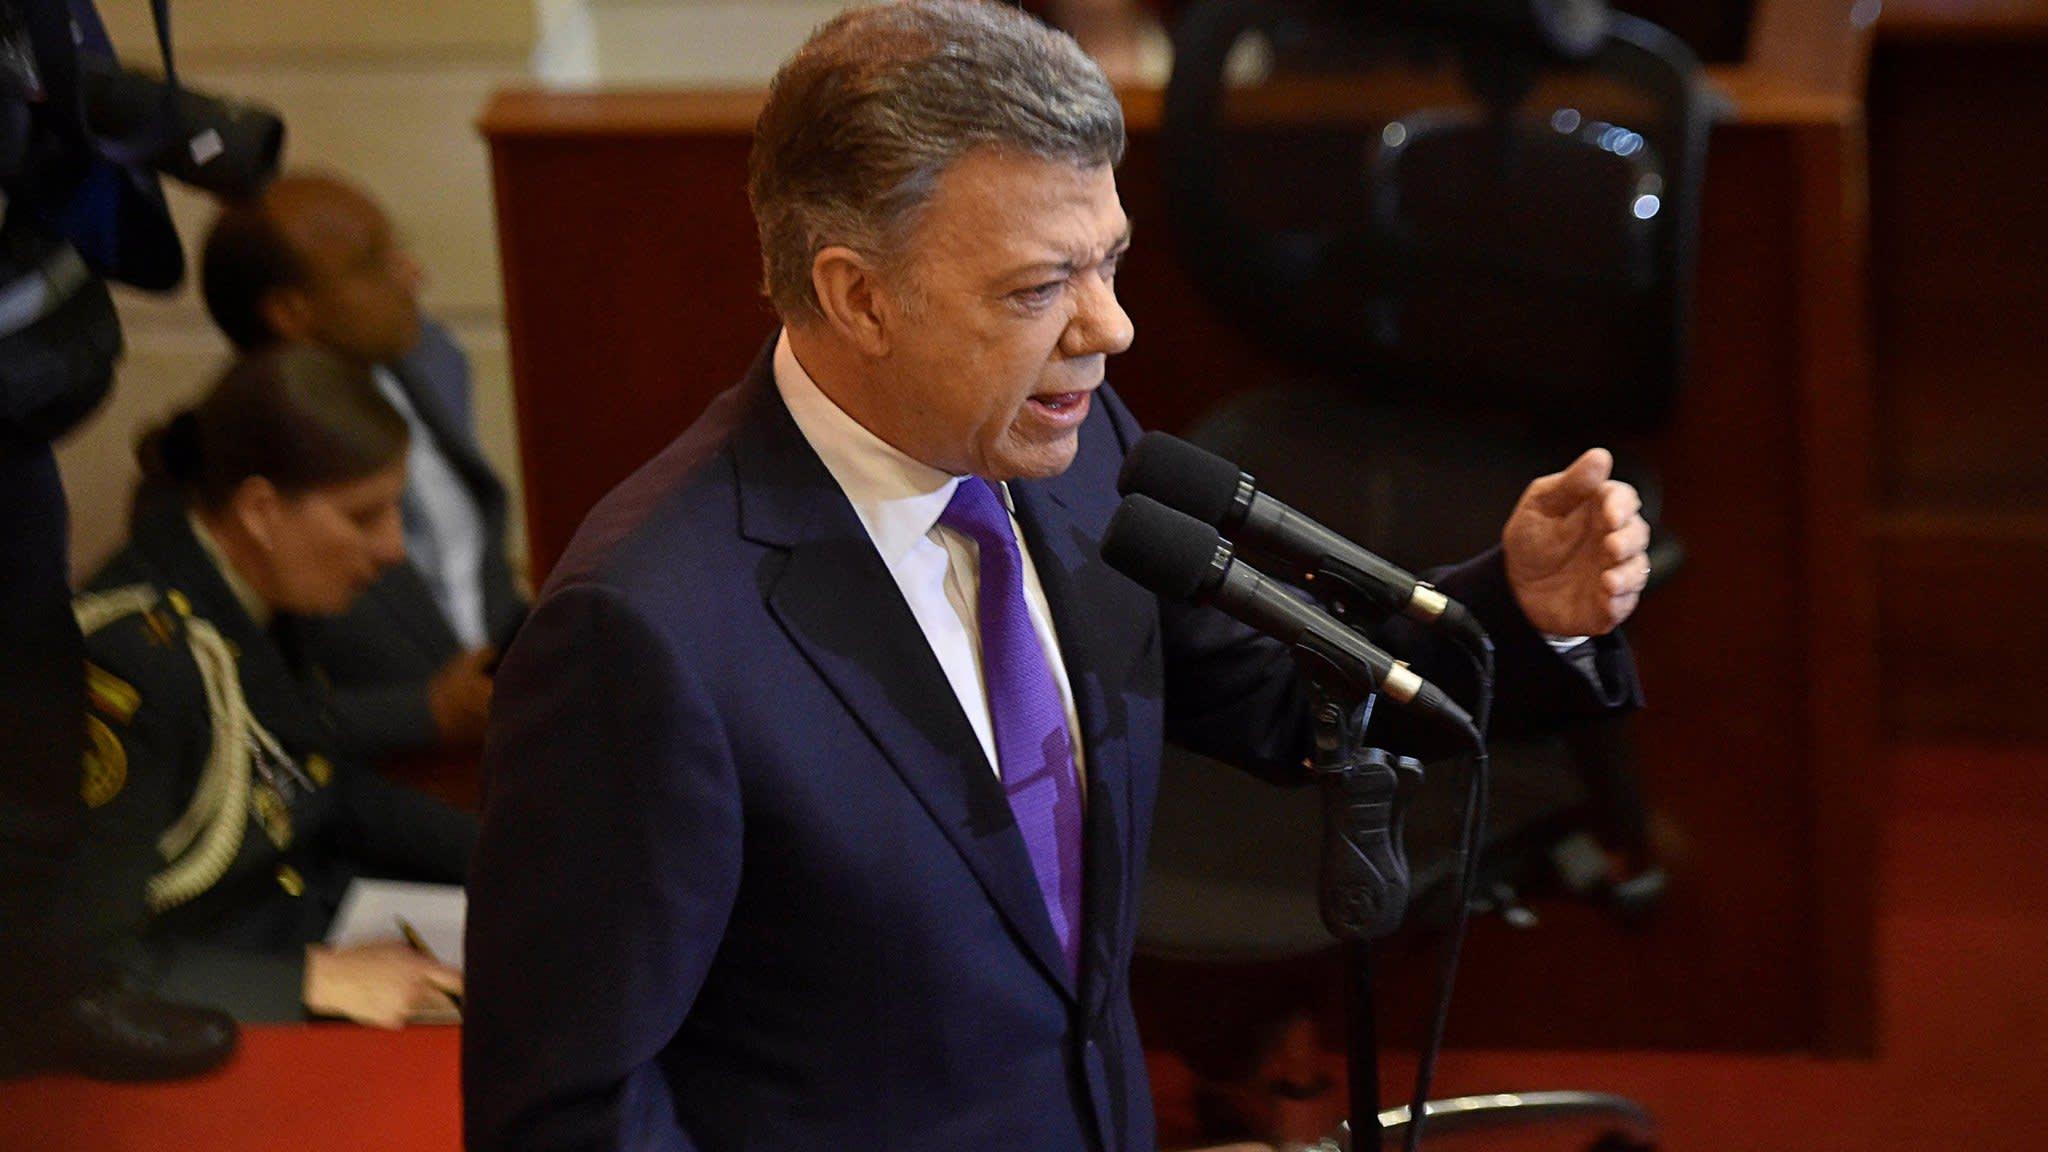 Farc members take seats in Colombia's congress for first time